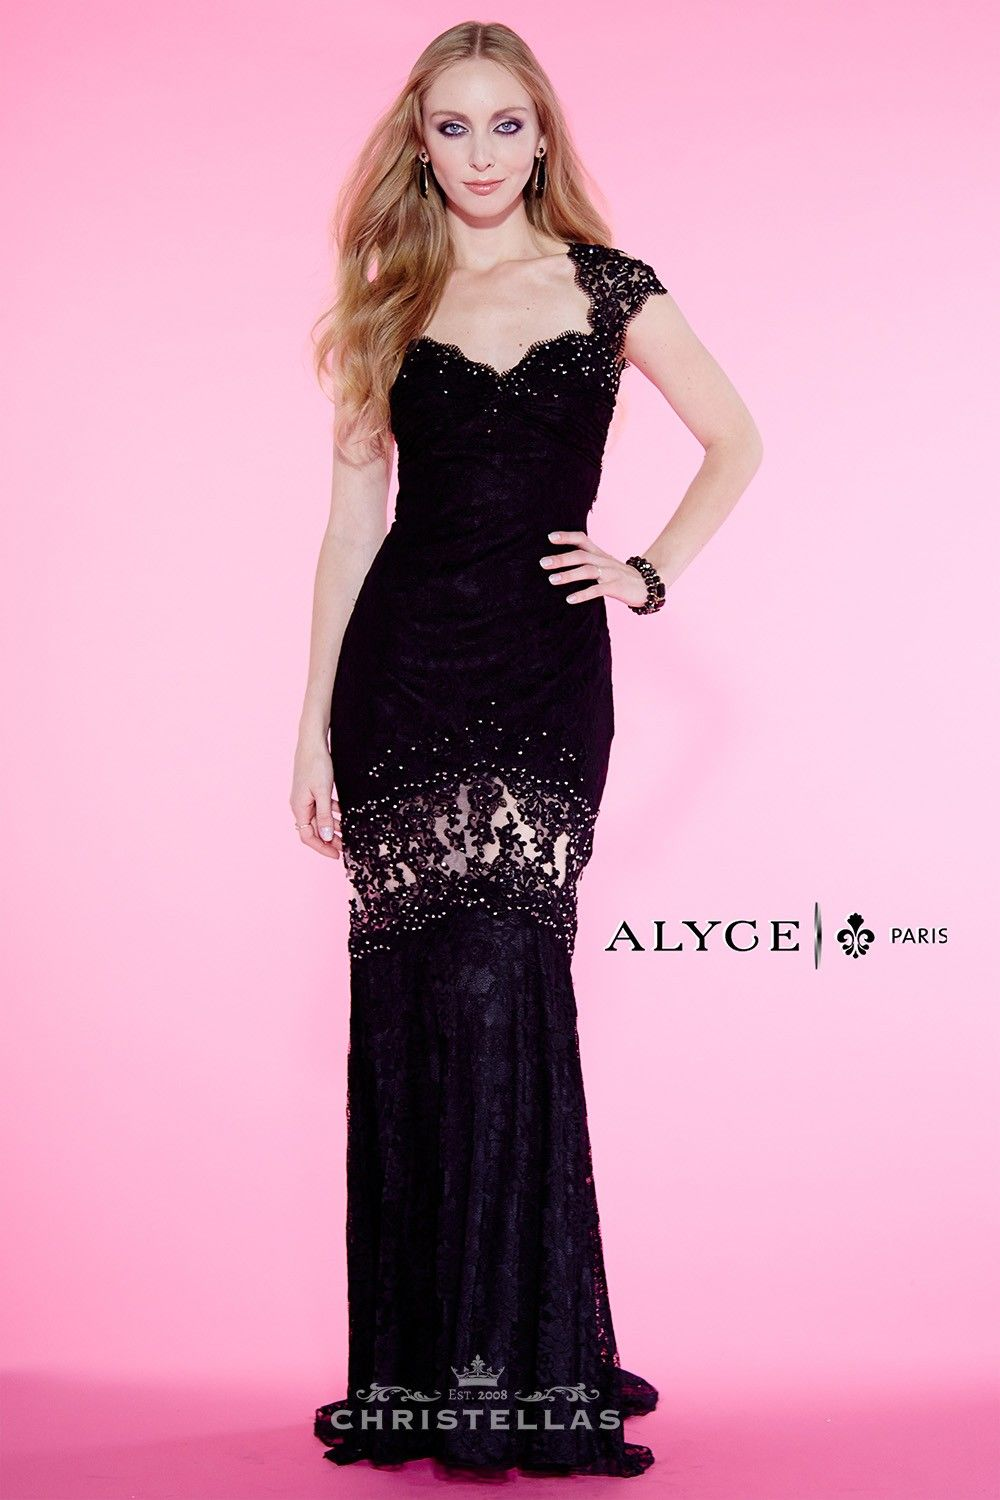 Lace pops among sheer illusion details in this sultry stunner! Alyce ...